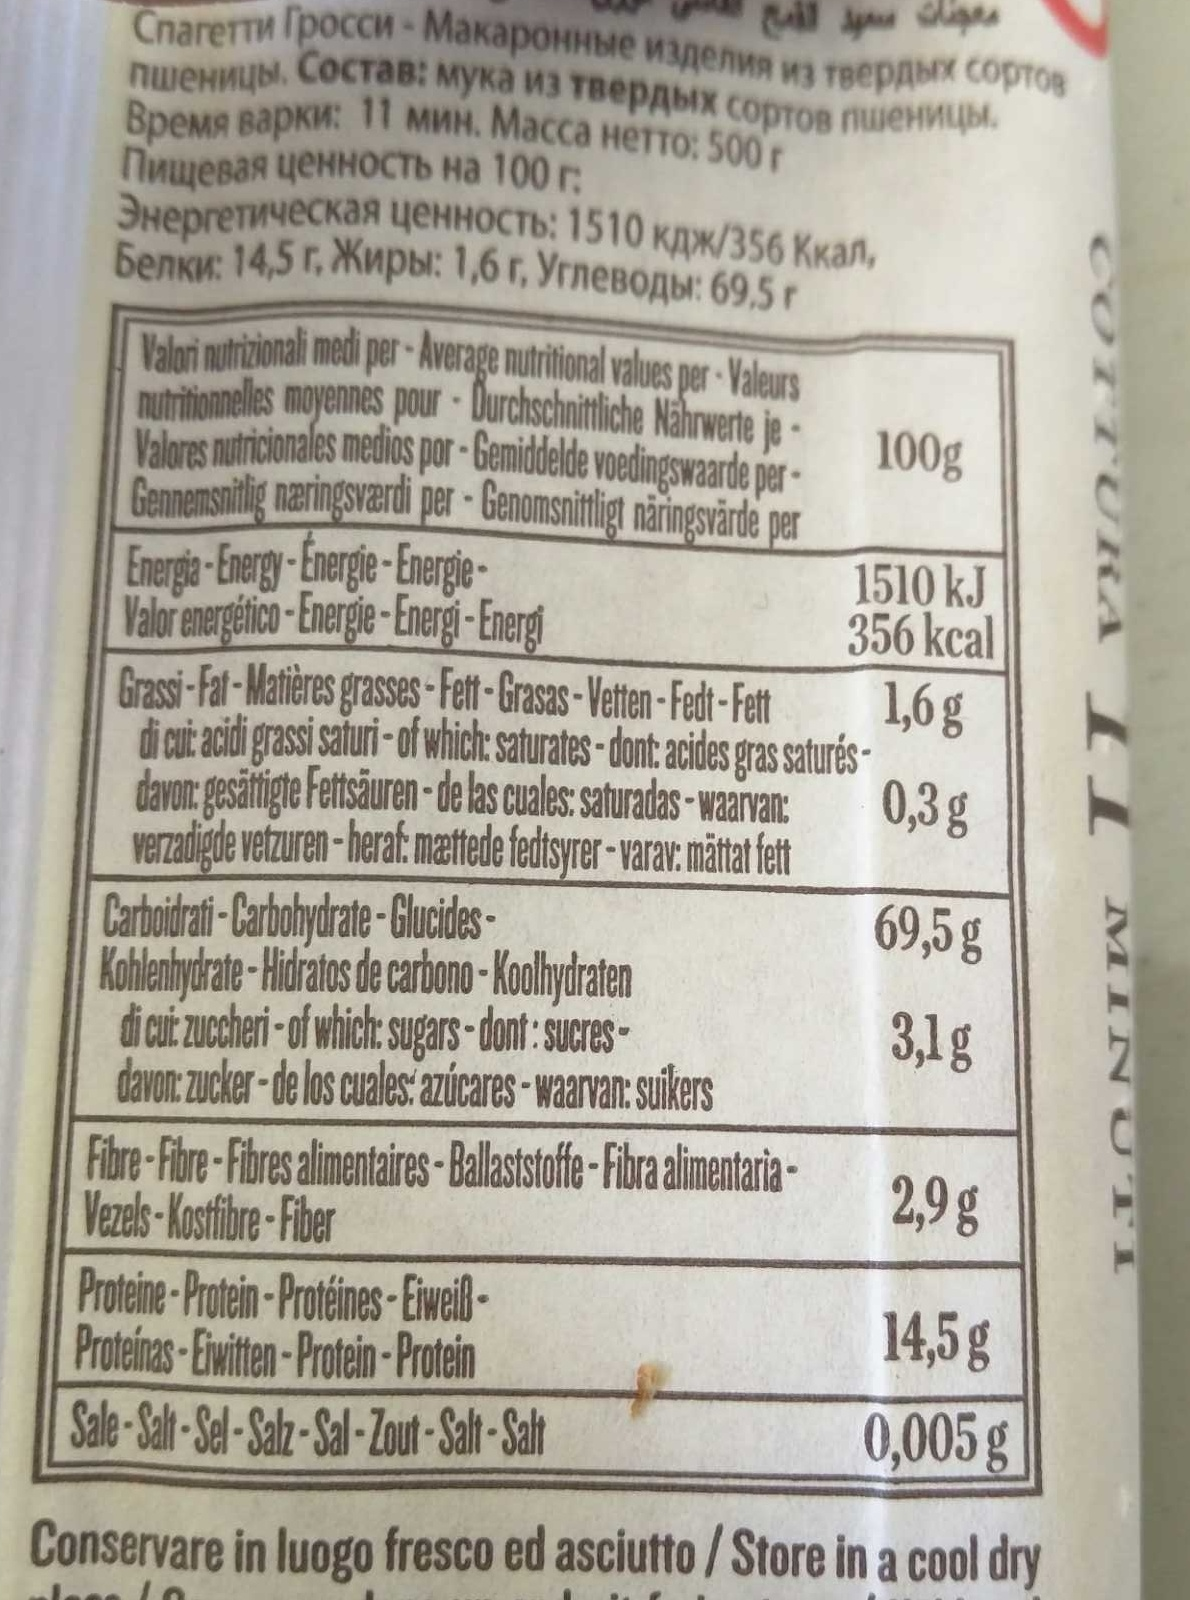 Spaghetti Grossi N°5 - Nutrition facts